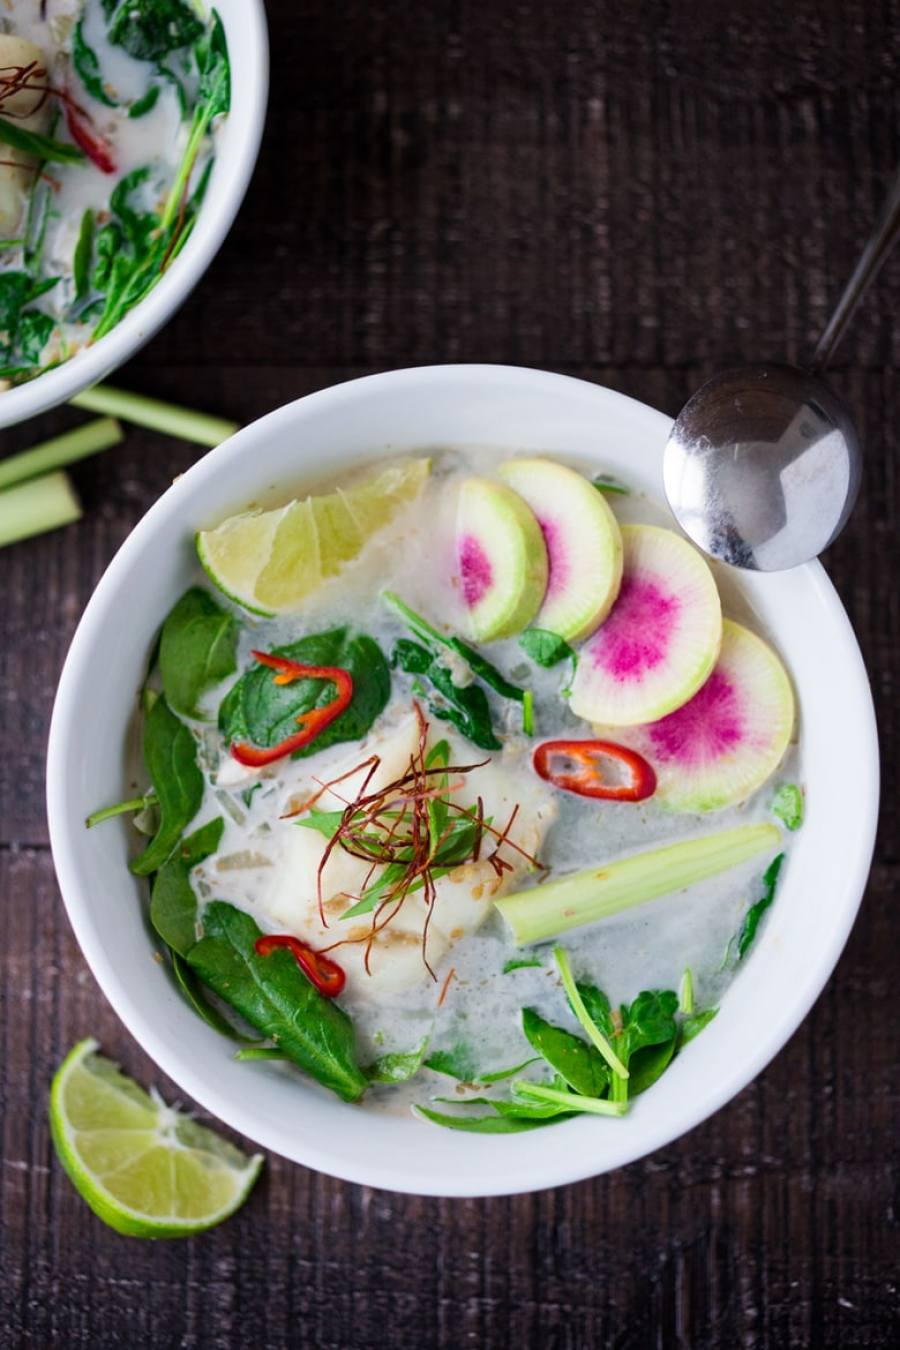 Poached Cod in Lemongrass Broth over Baby Spinach ...a fragrant, healing bowl that can be made in under 30 minutes. GF, Low Carb. | www.feastingathome.com